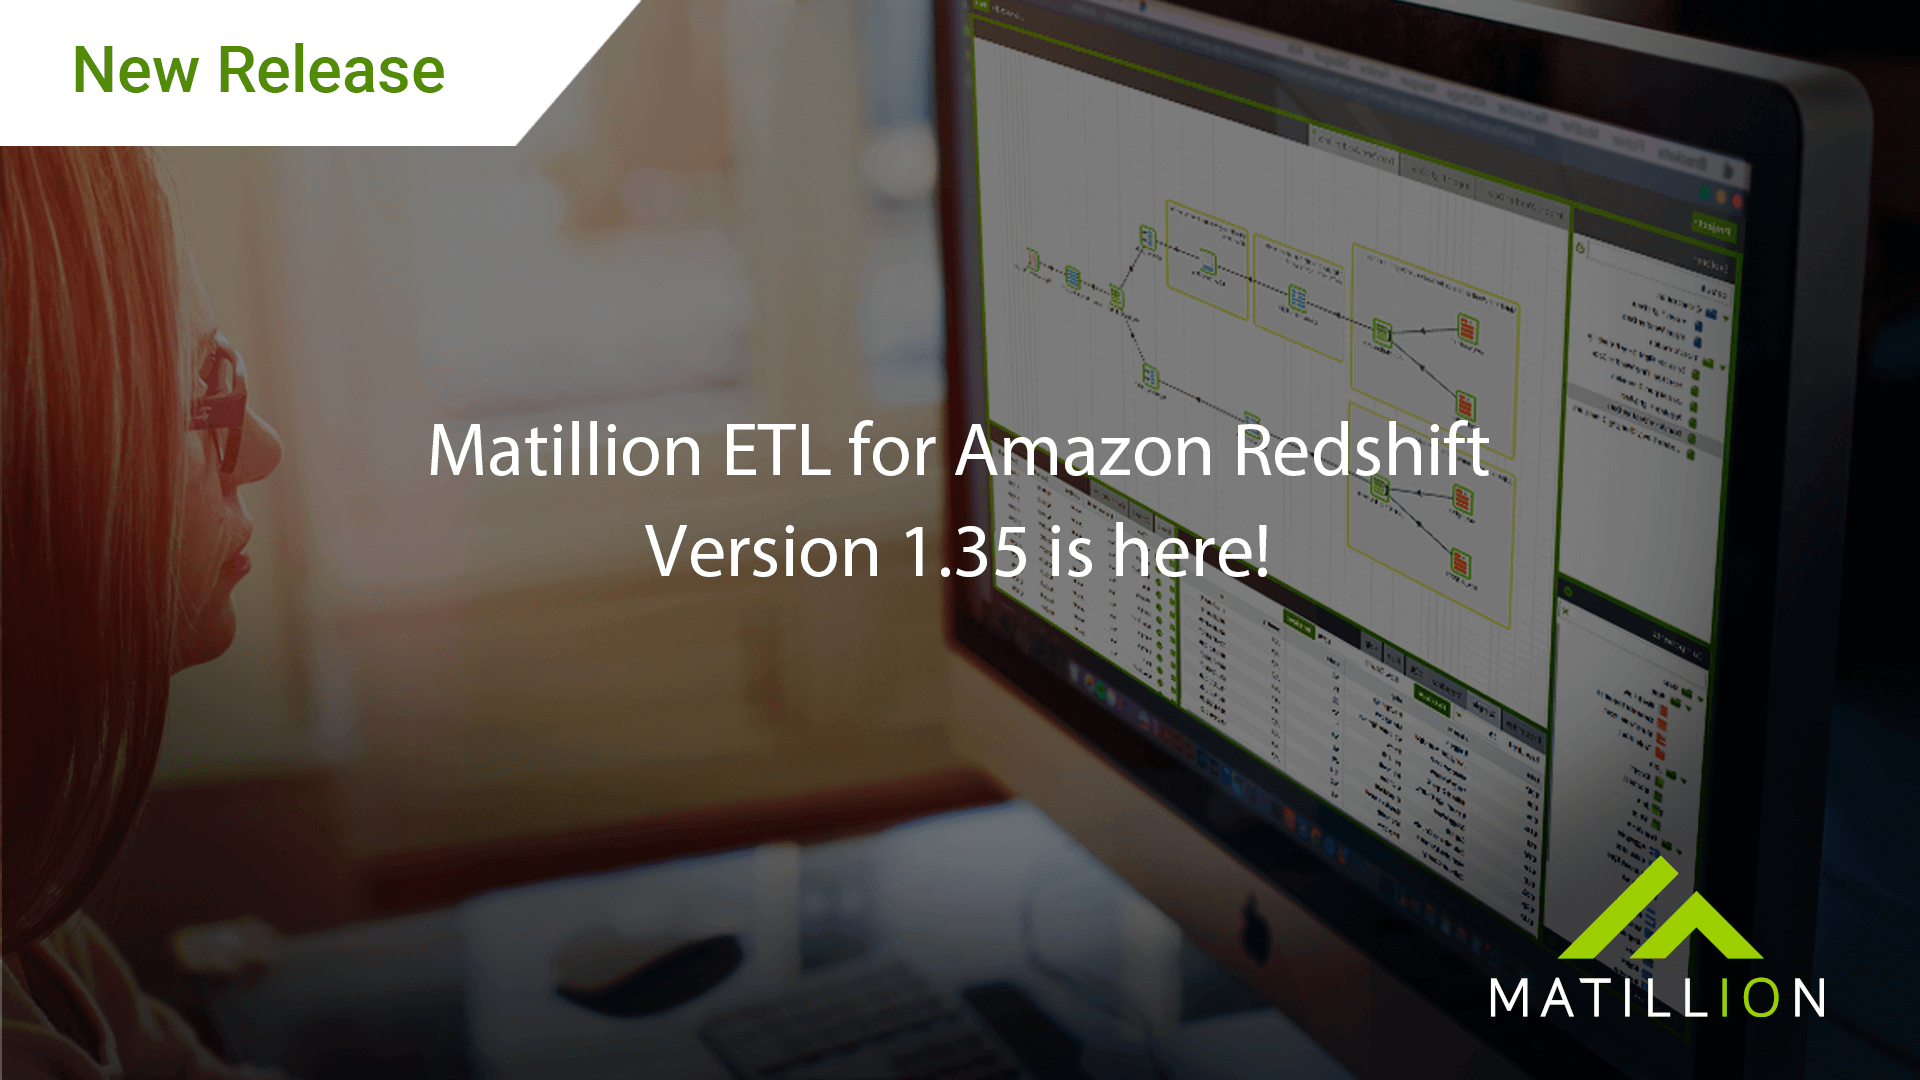 matillion etl for amazon redshift 1.35 version release